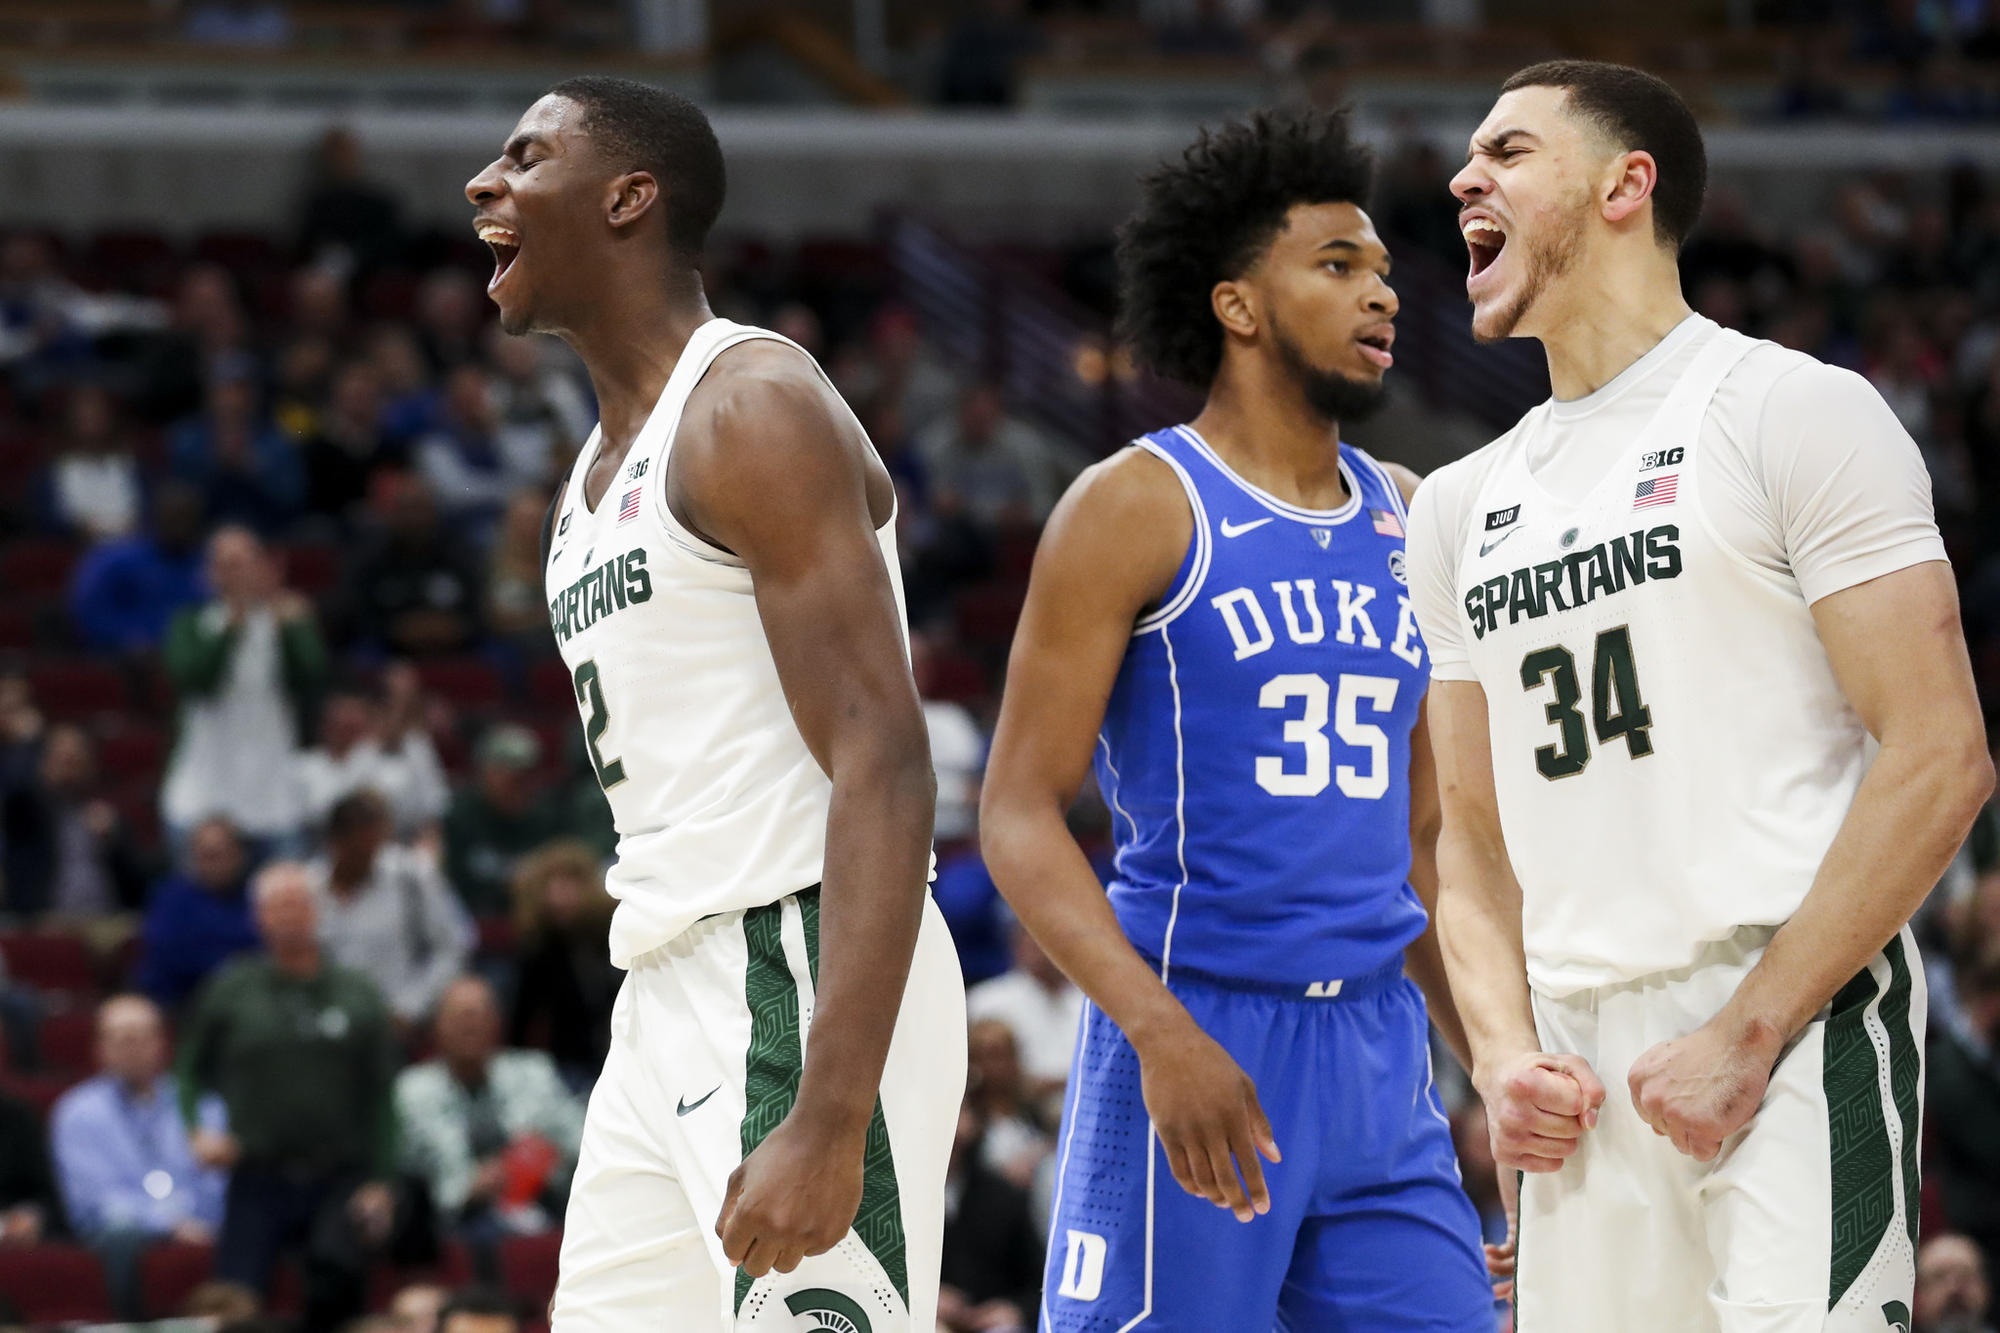 Duke 88, Michigan State 81